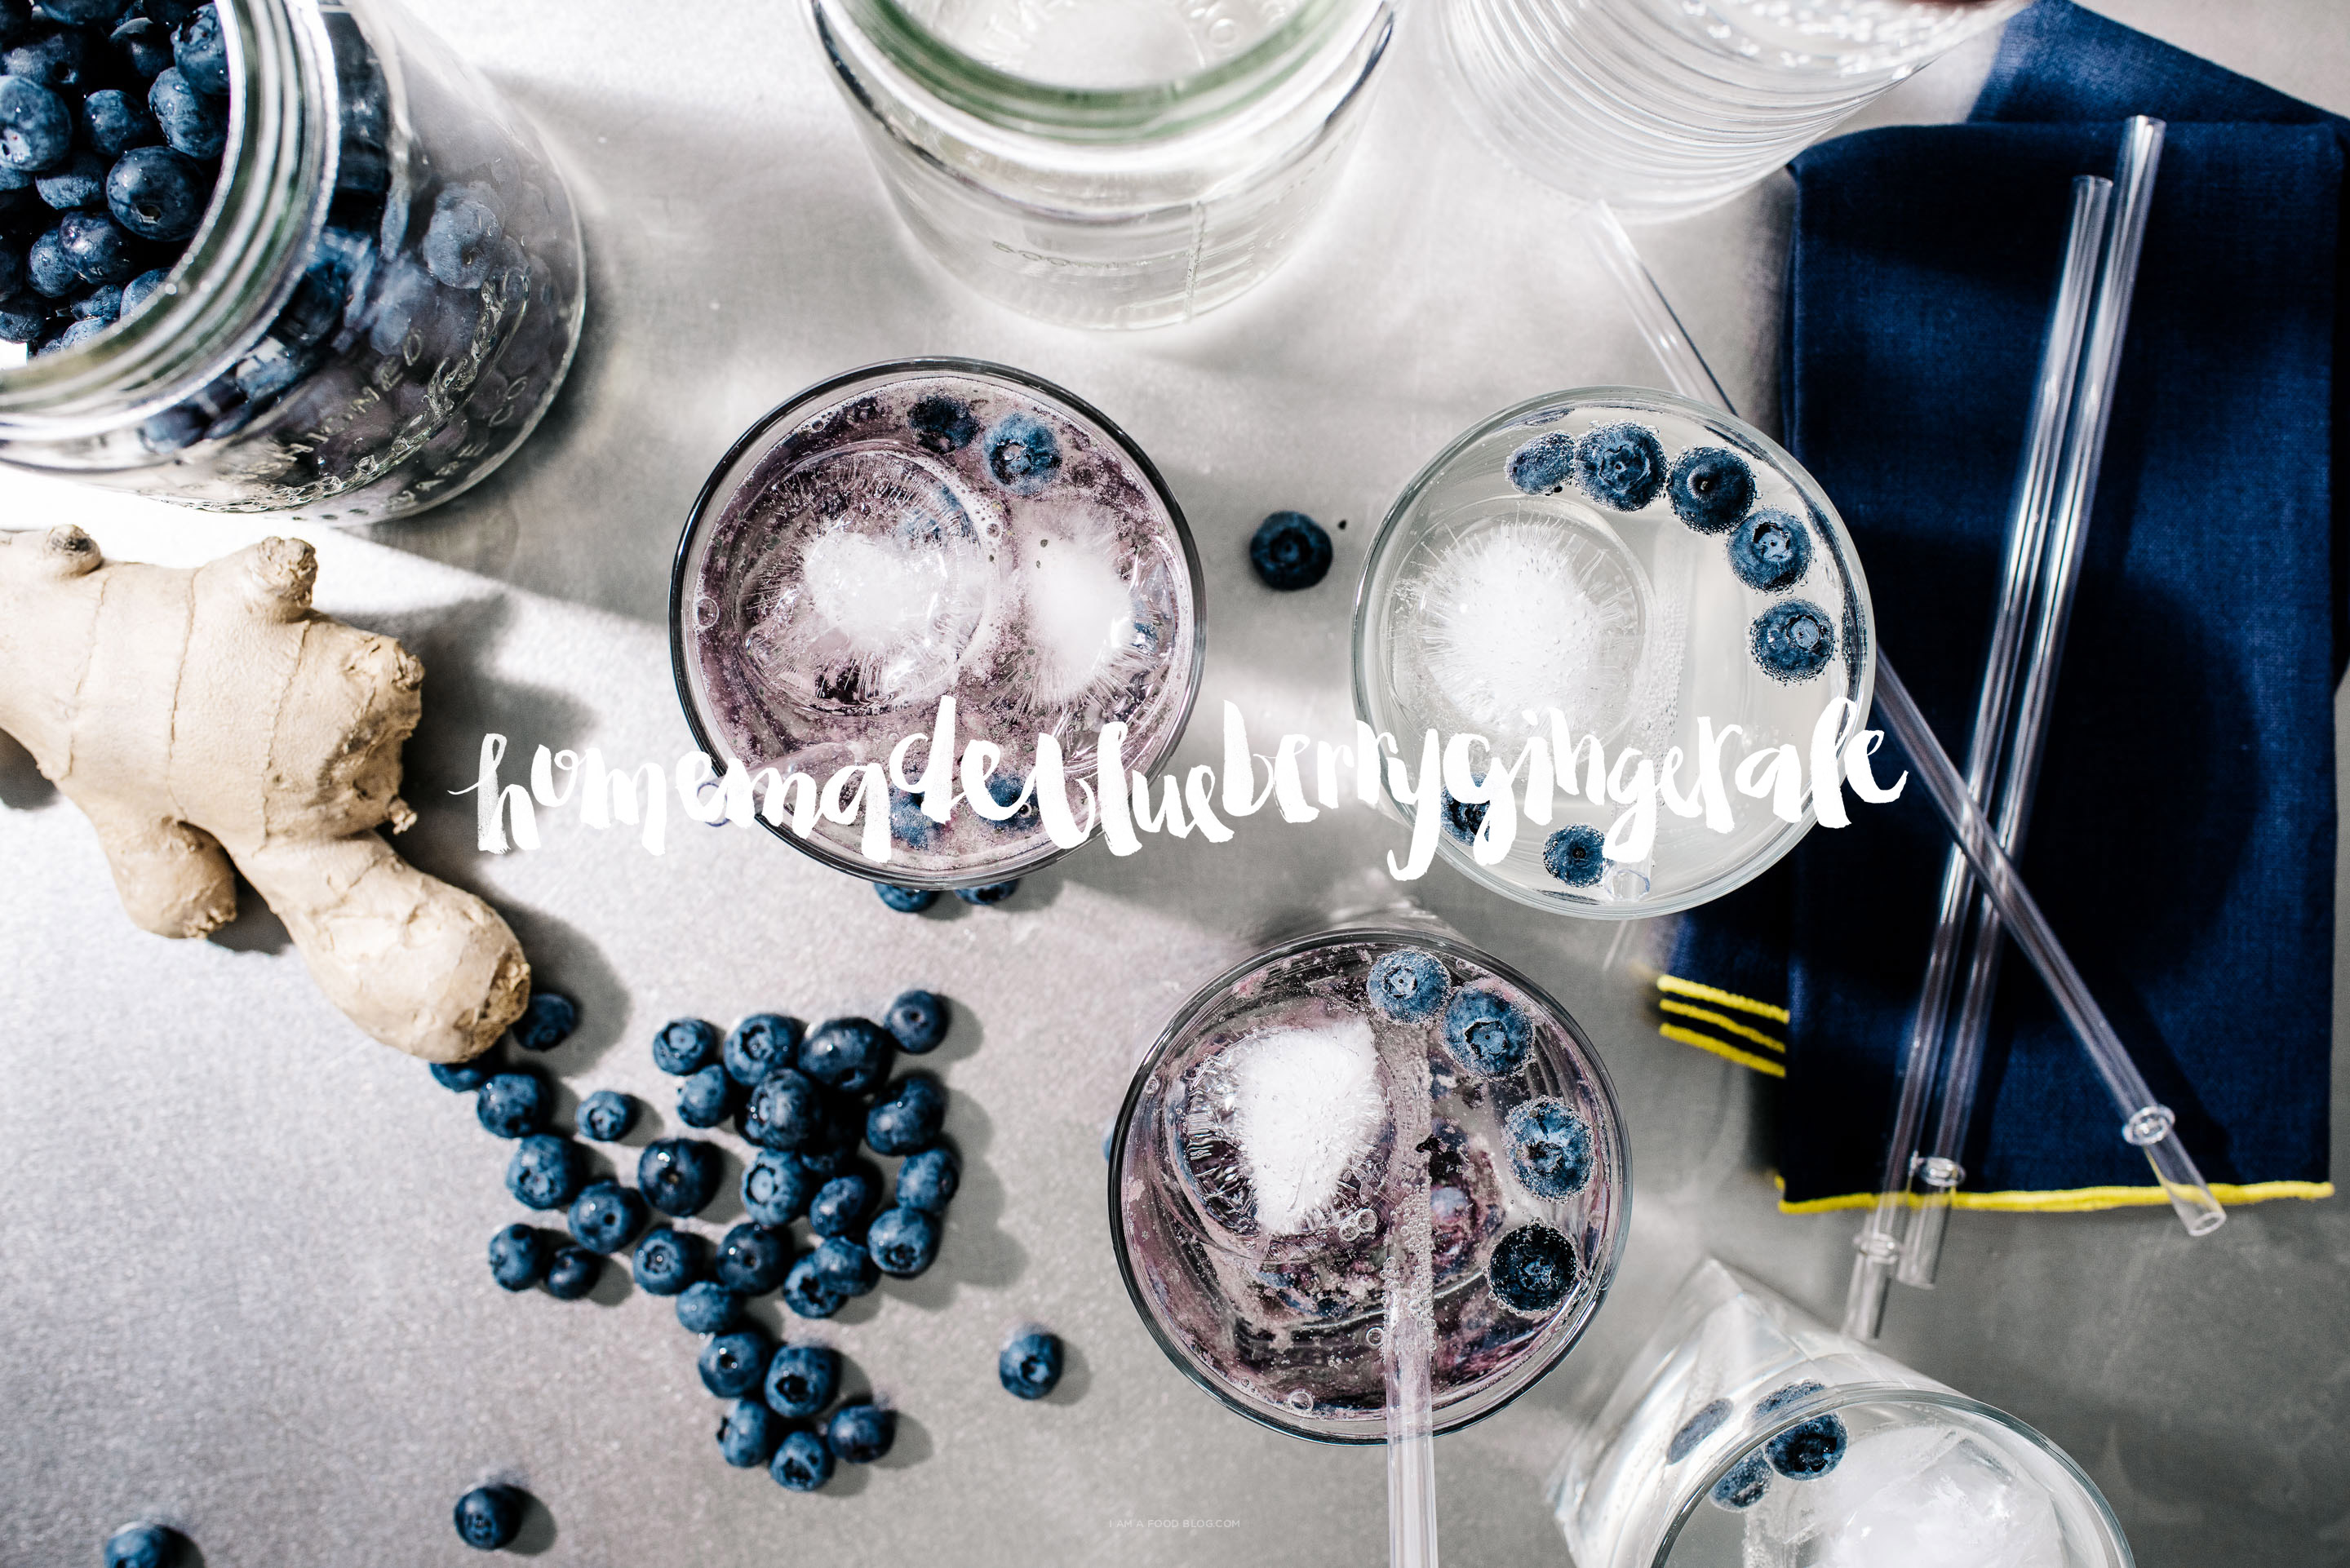 homemade ginger ale blueberry spritz recipe - www.iamafoodblog.com